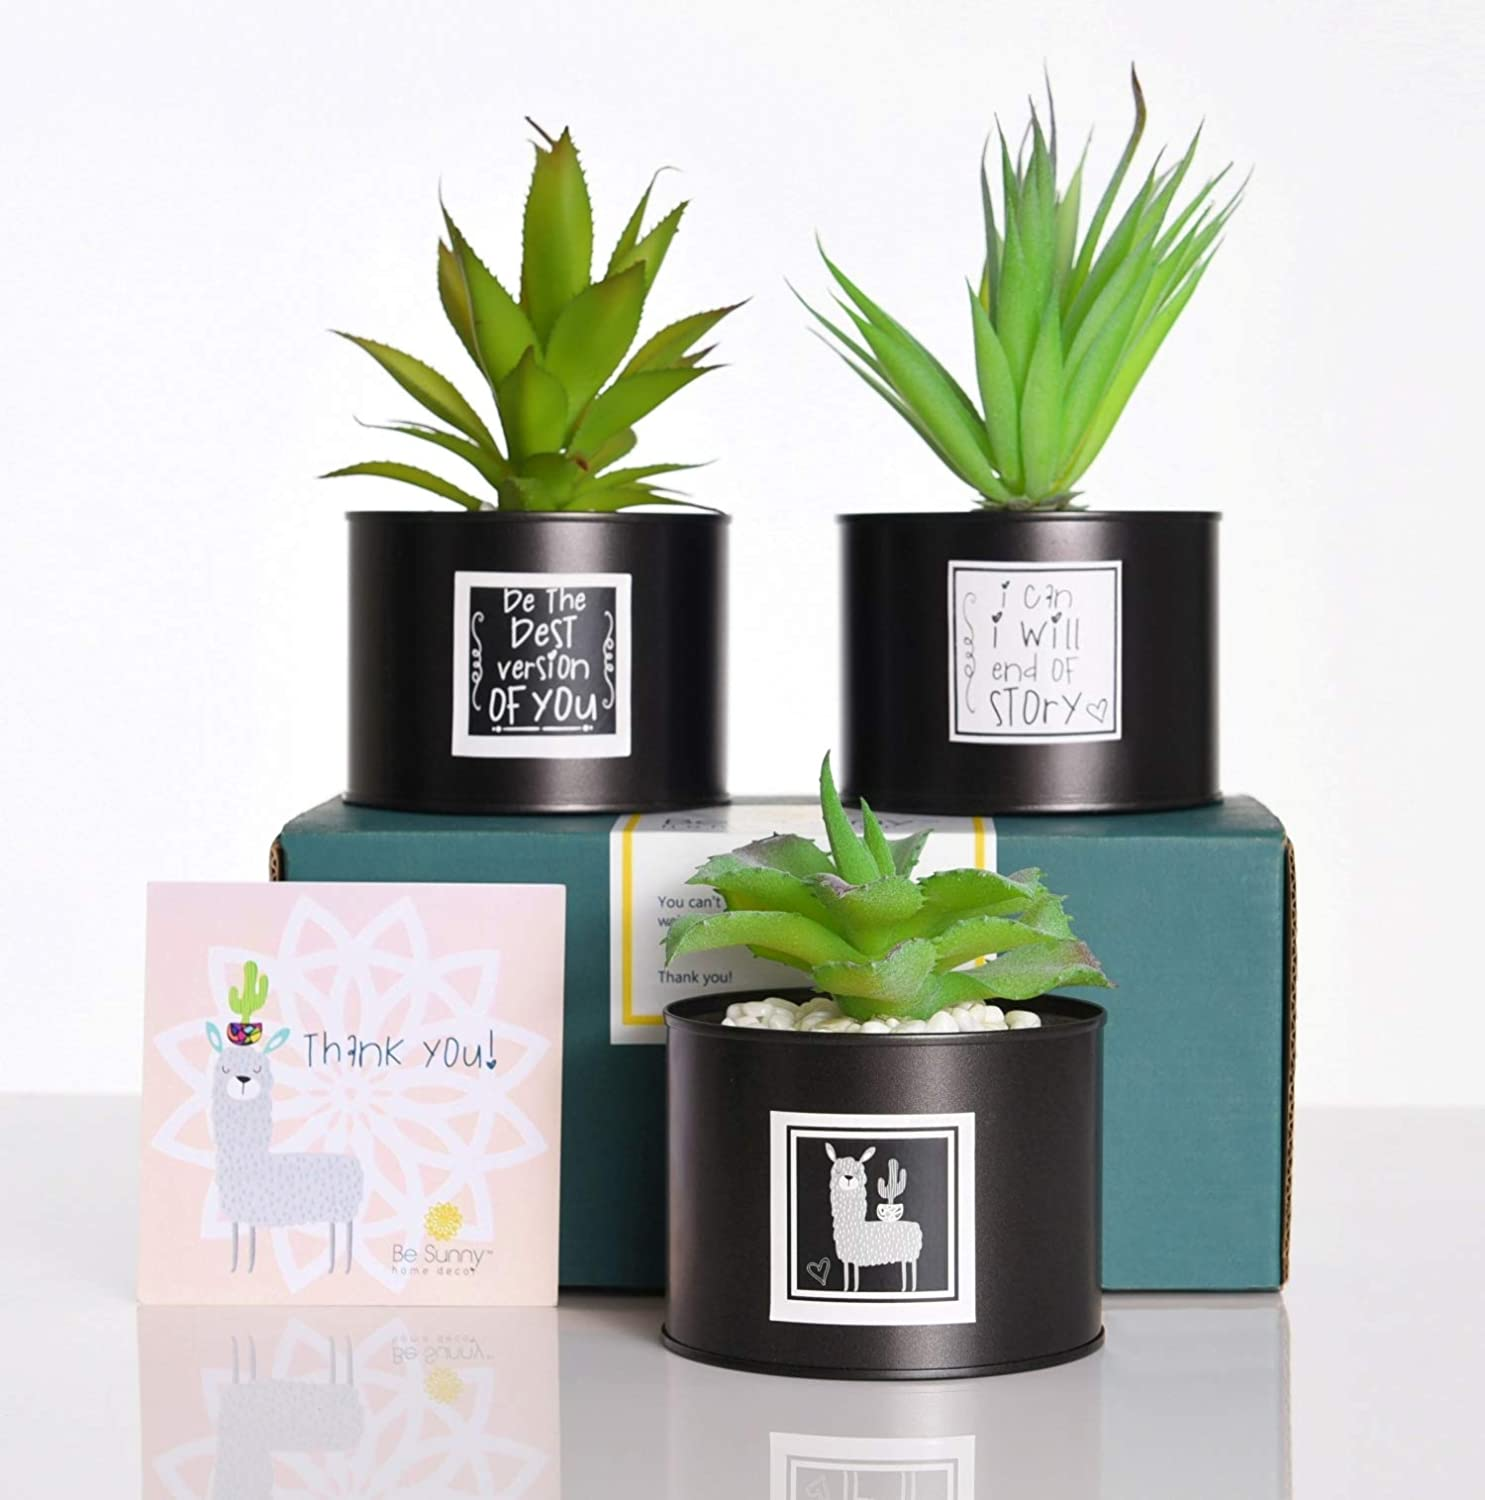 Be Sunny Artificial Plants Cactus Decorations - Set of 3 Fake Succulent in Black Luxury Metal Pots - Llama Label and Inspirational Signs Included - Desk Decorations for Women Office and Home Decor